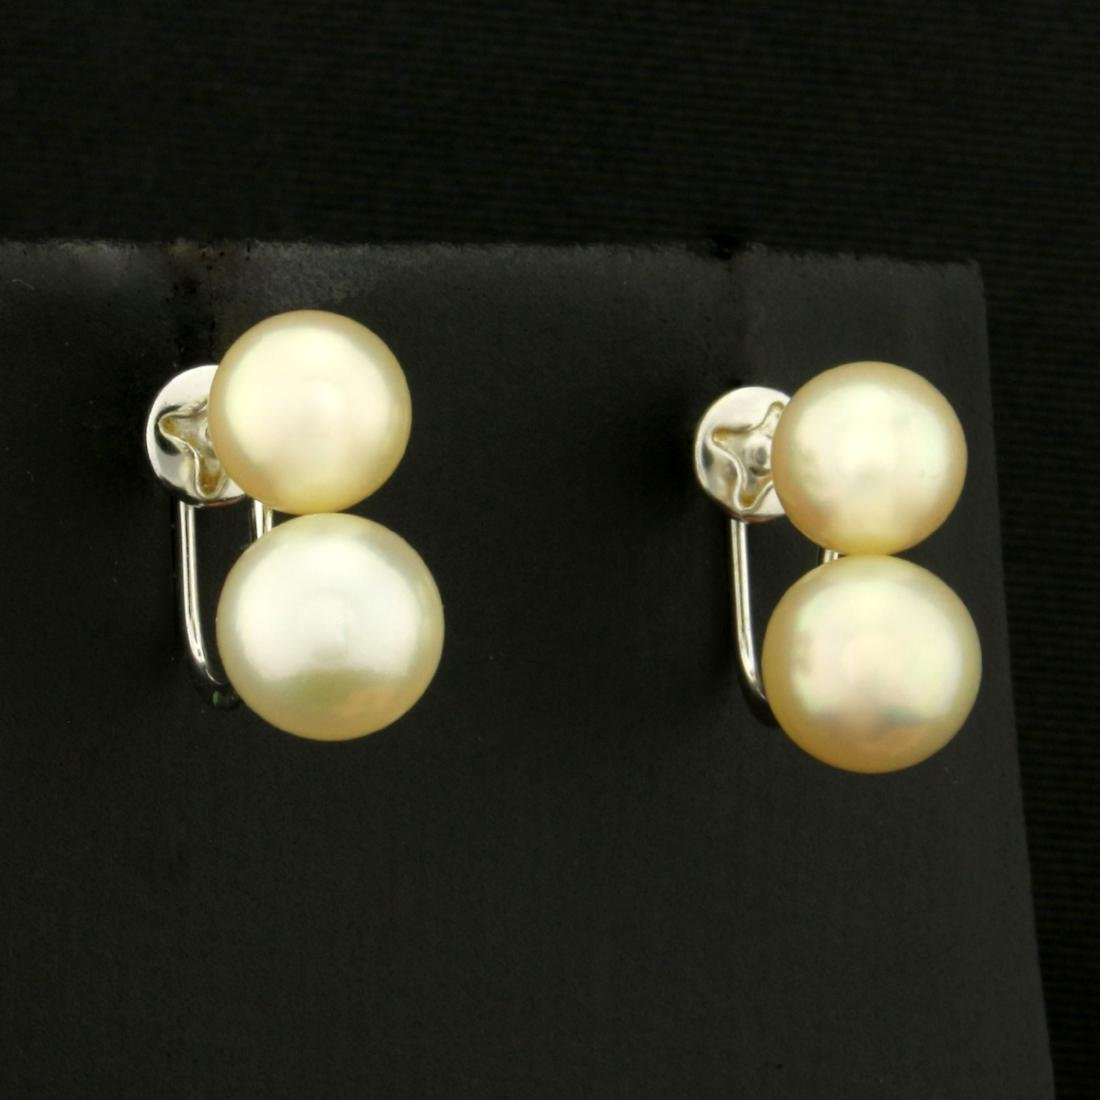 Vintage Screw Back Akoya Pearl Earrings in 14K White